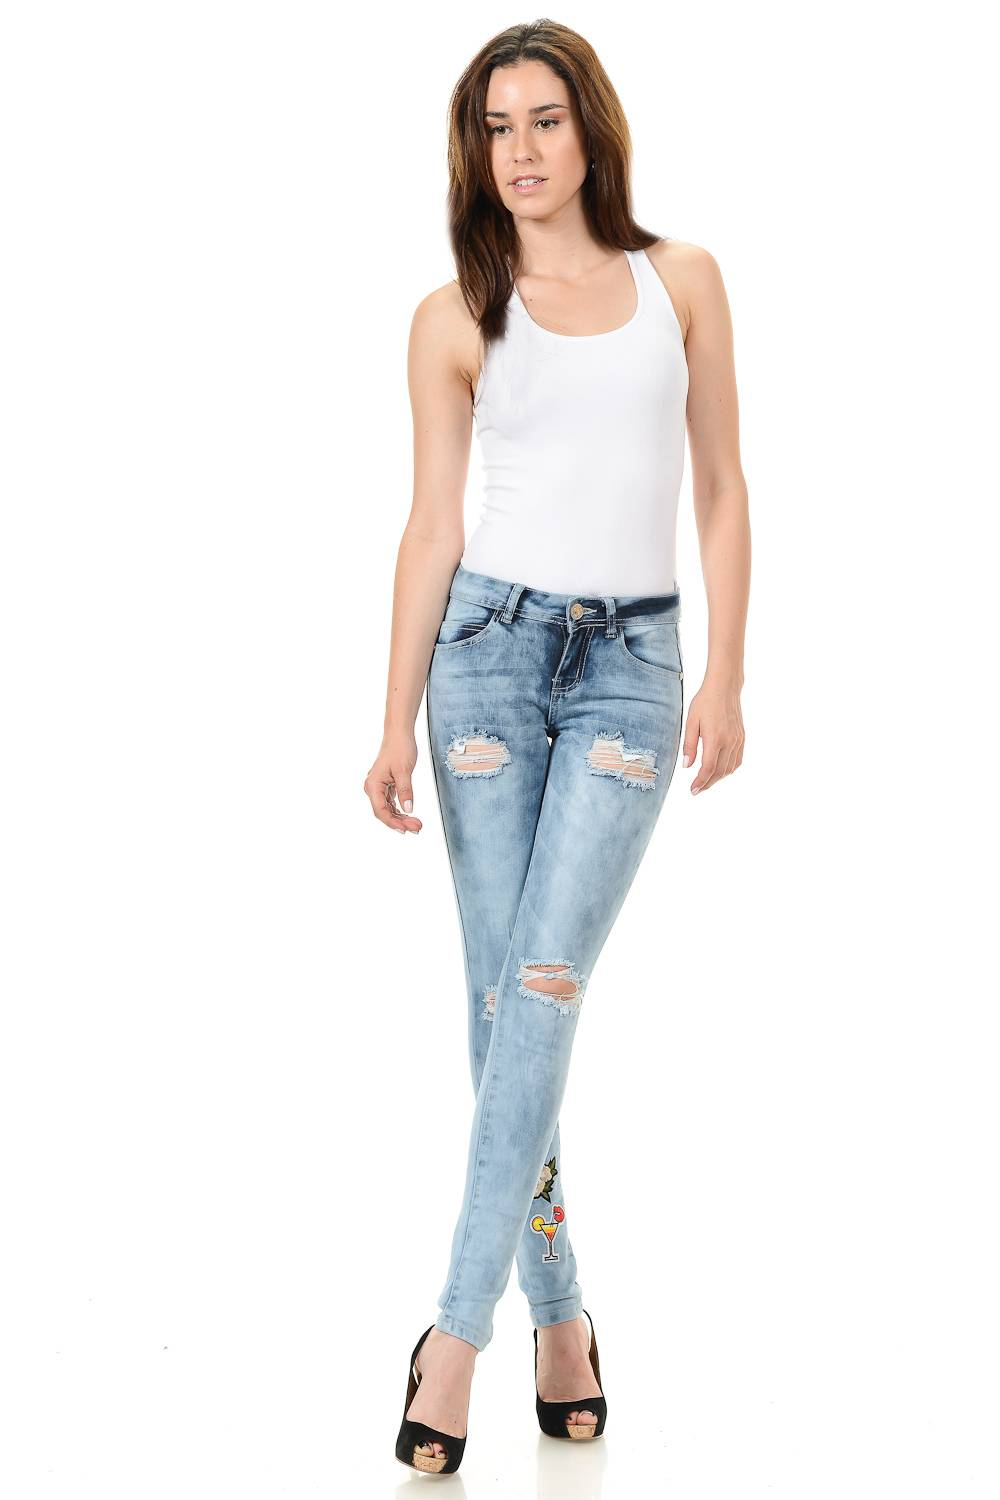 Sweet Look Premium Edition Women's Jeans (Sizing: 0-15 ...